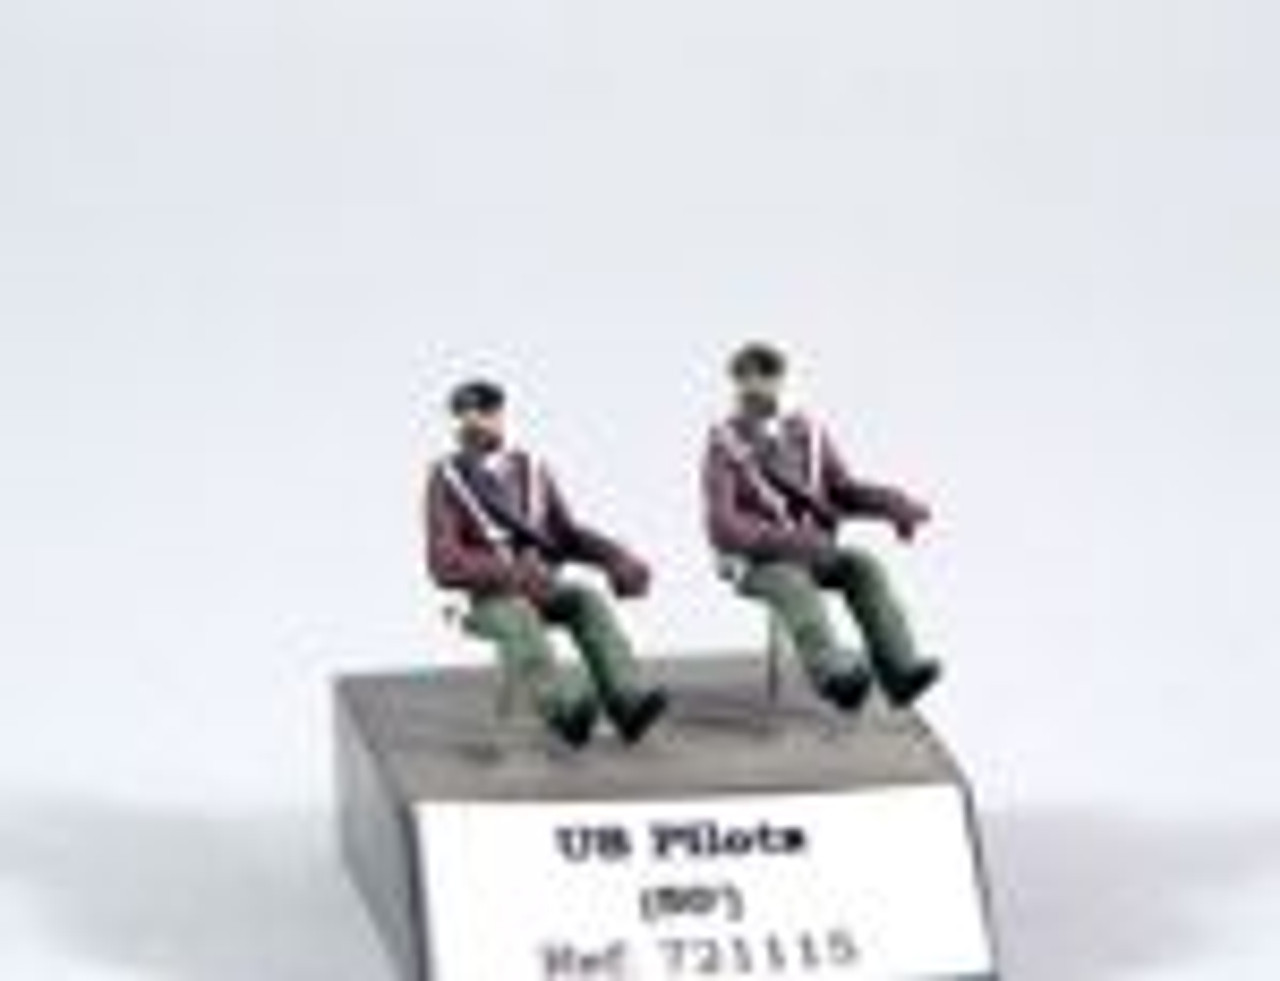 PJ Productions 2x USAF pilots seated in a/c 50s Figures 1:72